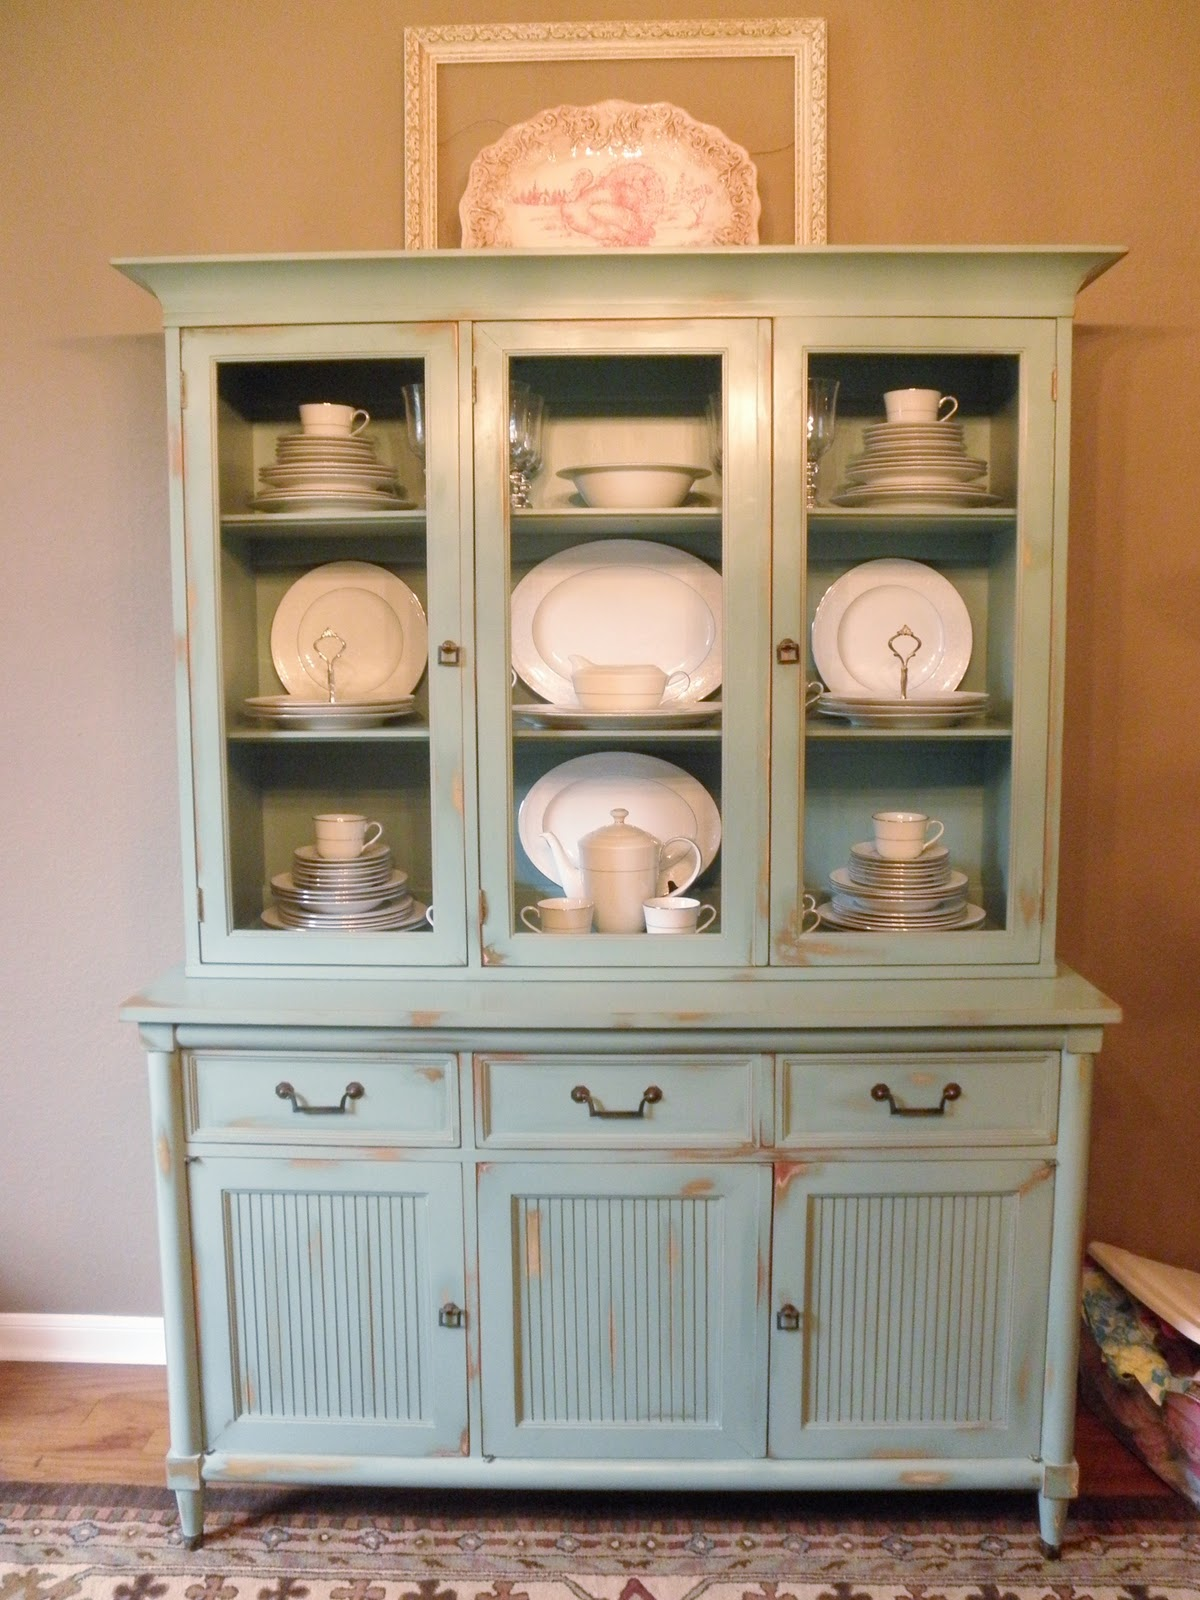 Easy Way To Refinish Kitchen Cabinets Two Humans And Their Offspring Redemption Refinishing